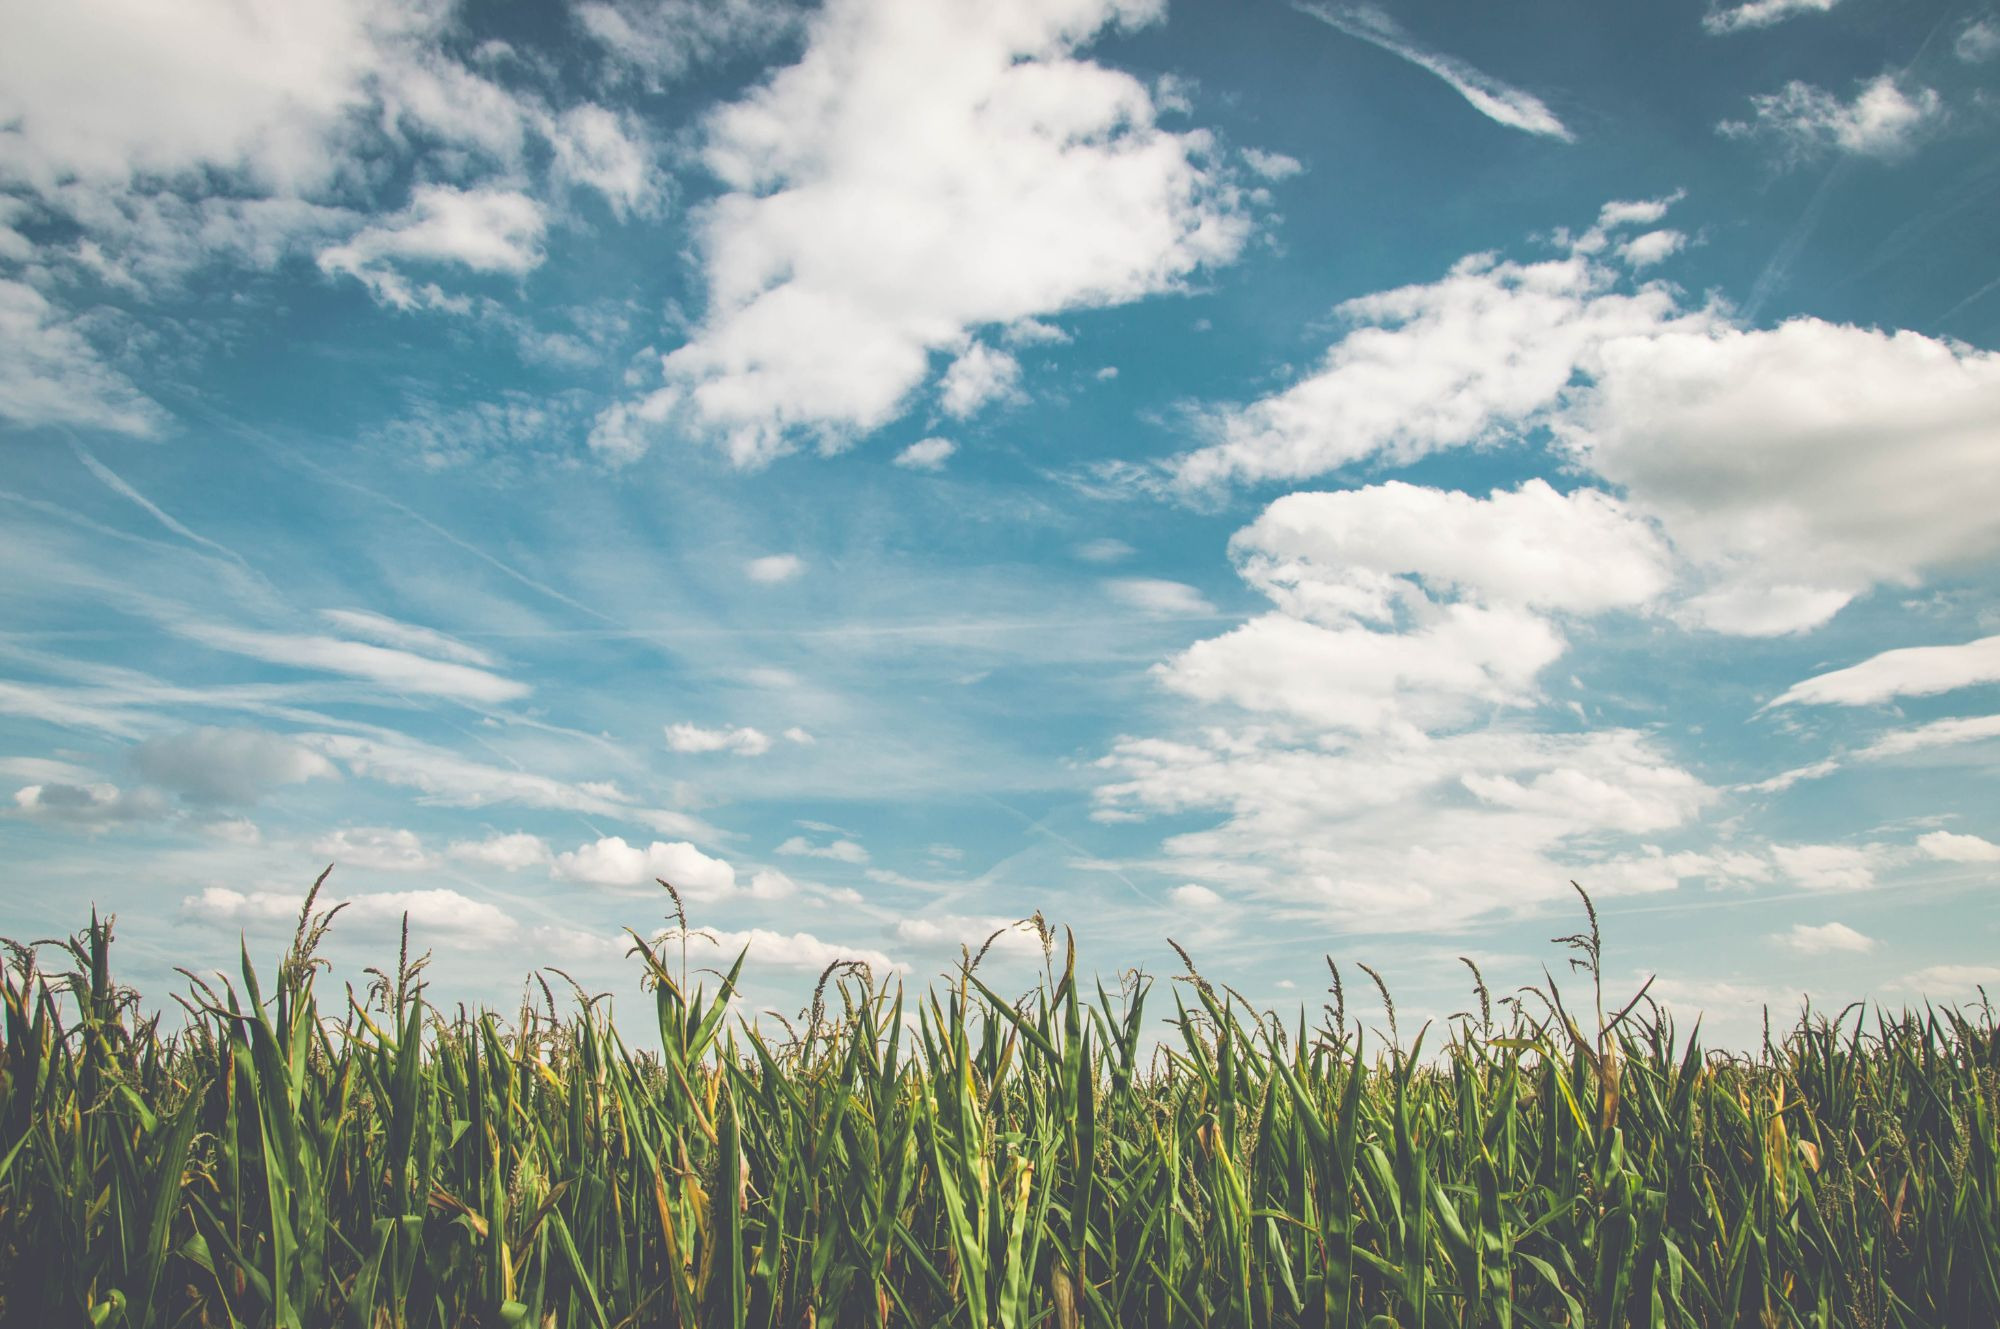 corn-fields-under-white-clouds-with-blue-sky-during-daytime-158827-1584872207.jpg